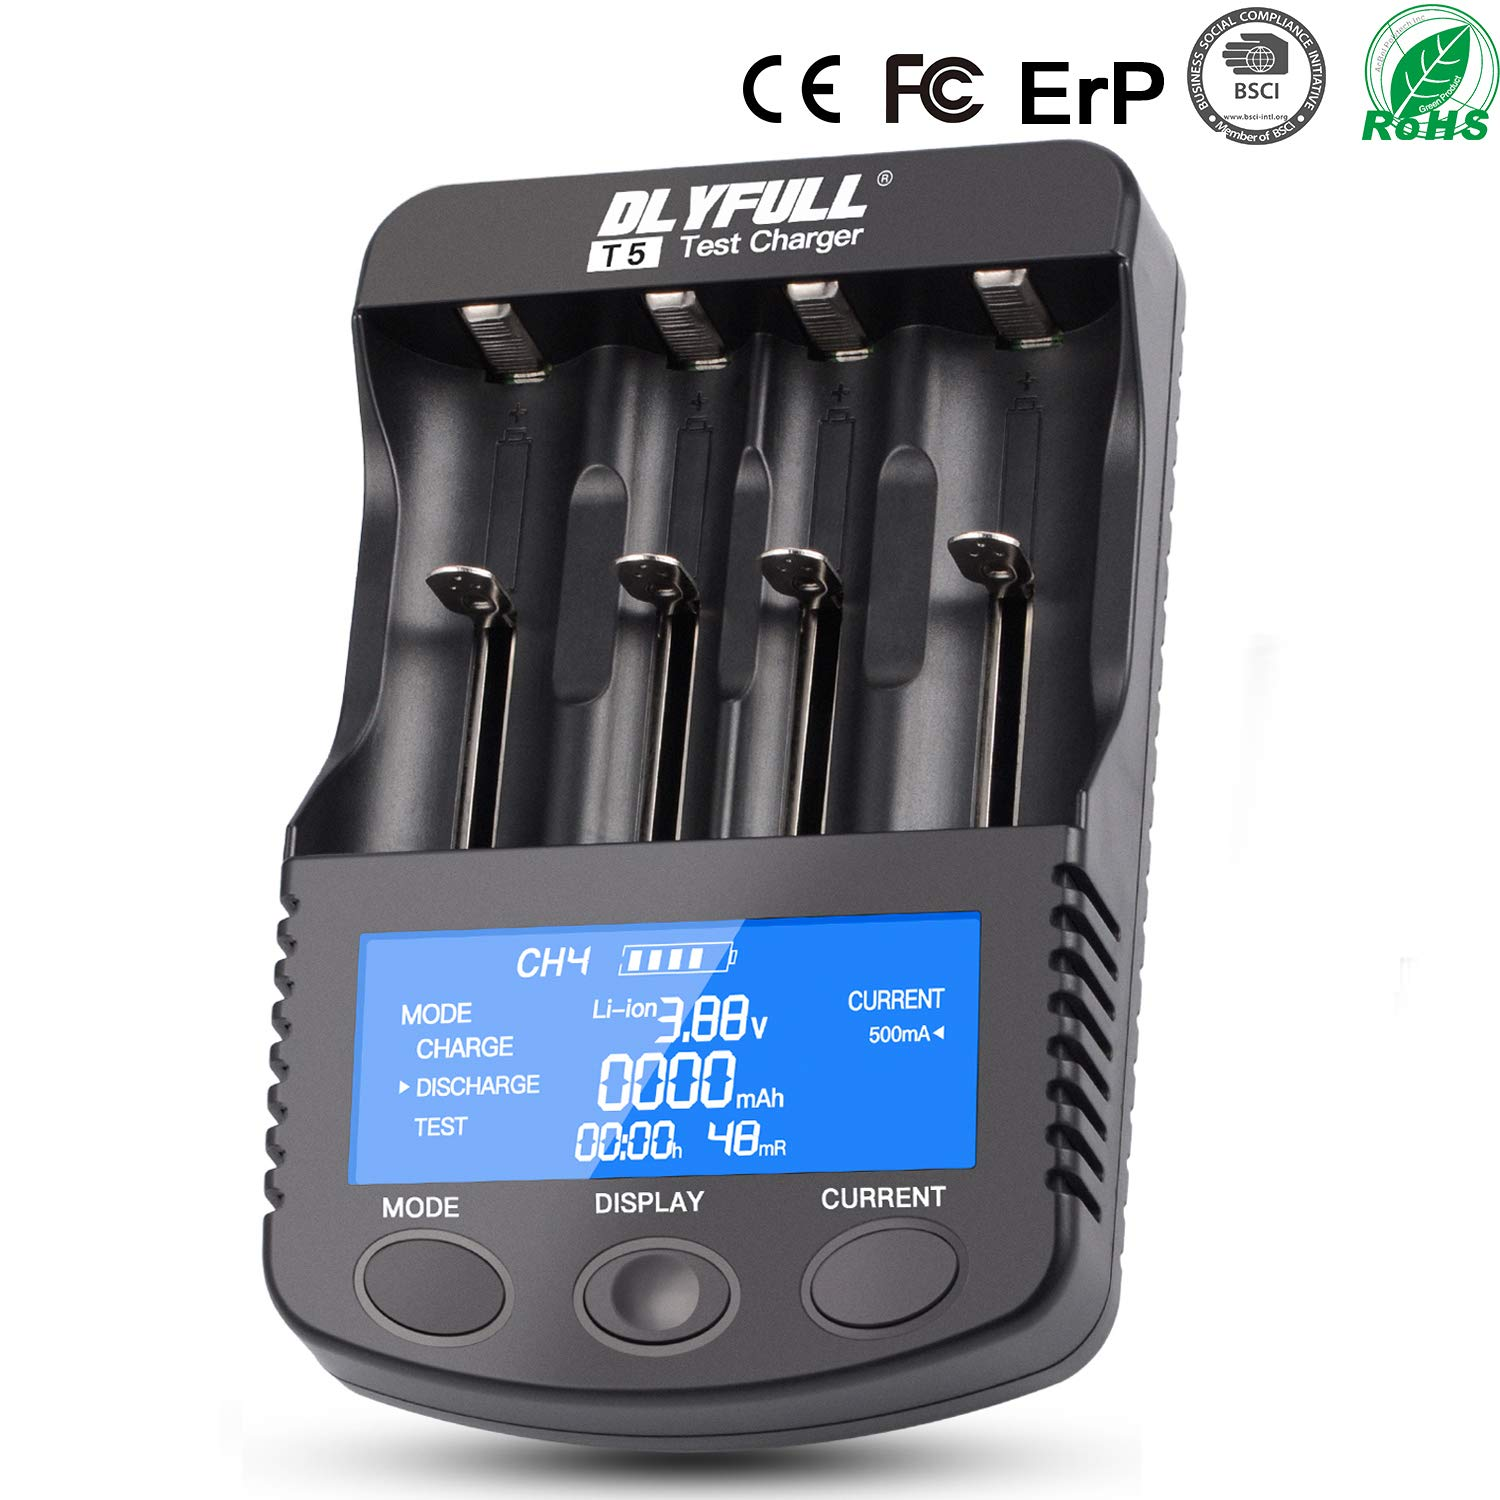 18650 Smart Battery Charger Universal Intelligent Charger LCD Display for 26650 18350 17670 18700 21700 20700 Li-ion IMR INR ICR Ni-MH Ni-Cd AAA AA ...